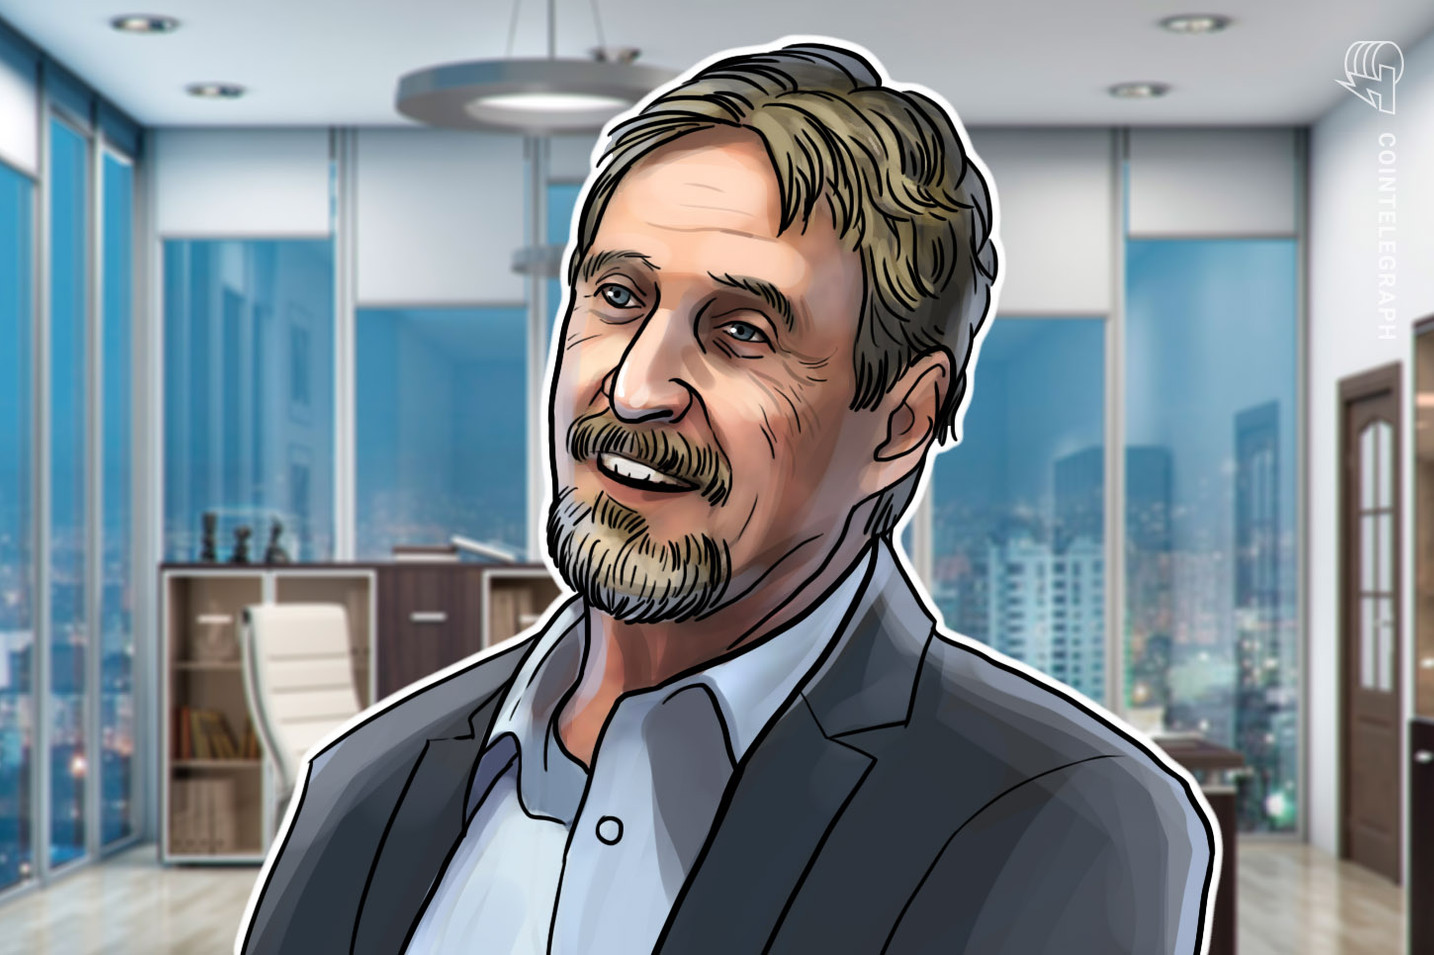 John McAfee Offers $500 in ETH-Based DAI for Post-Apocalyptic Photos